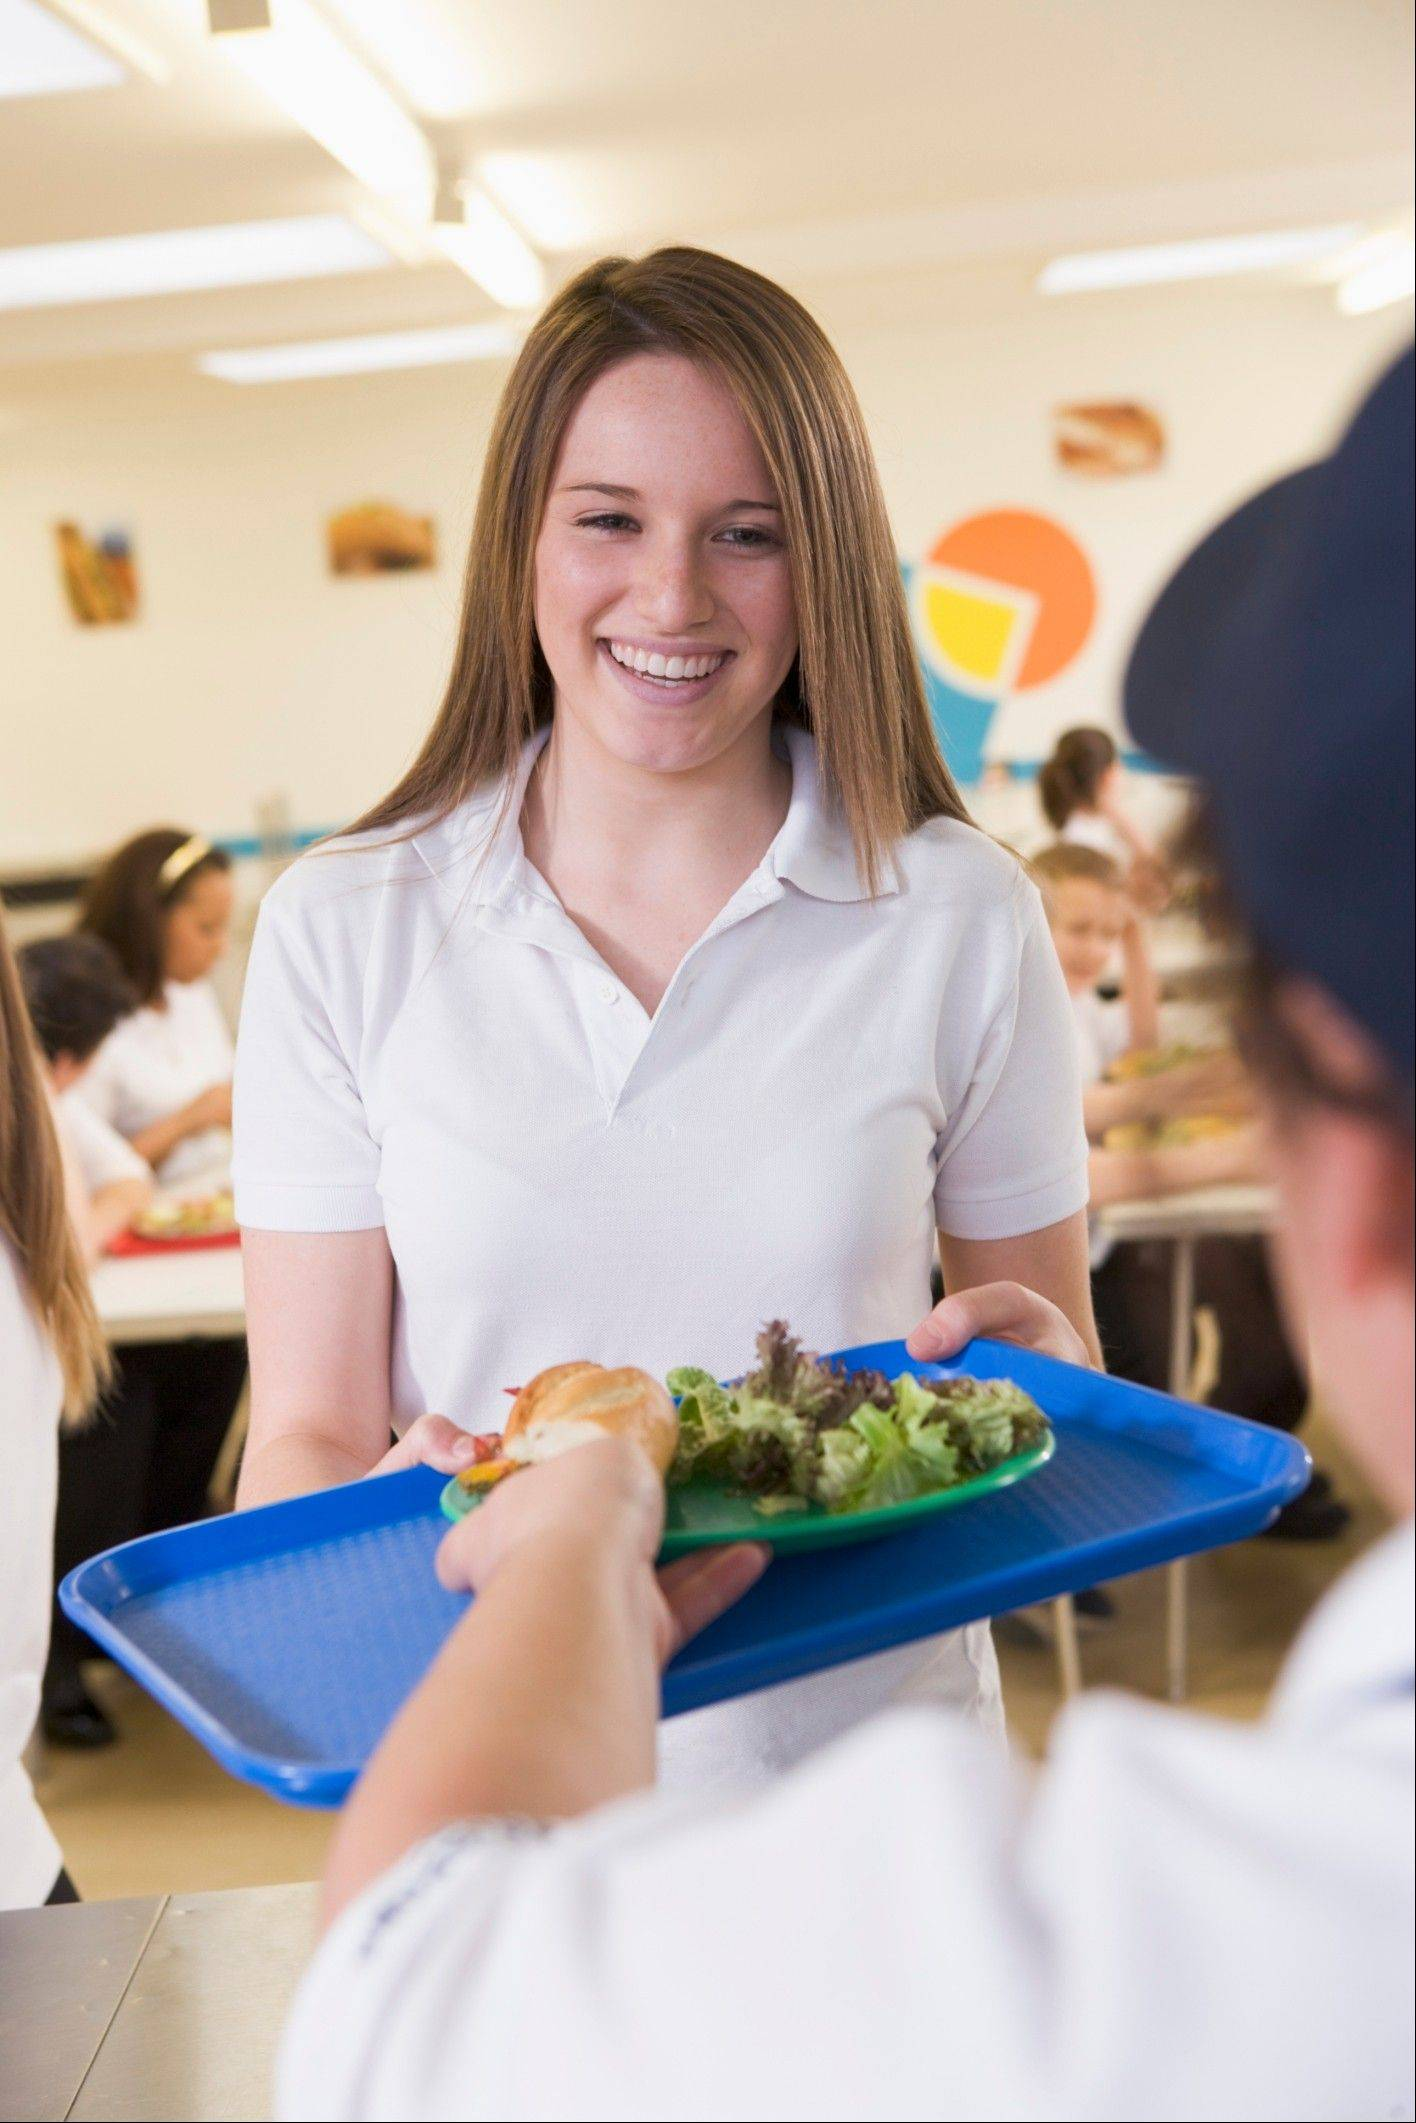 New school lunch offerings will include food lower in sodium and fat.